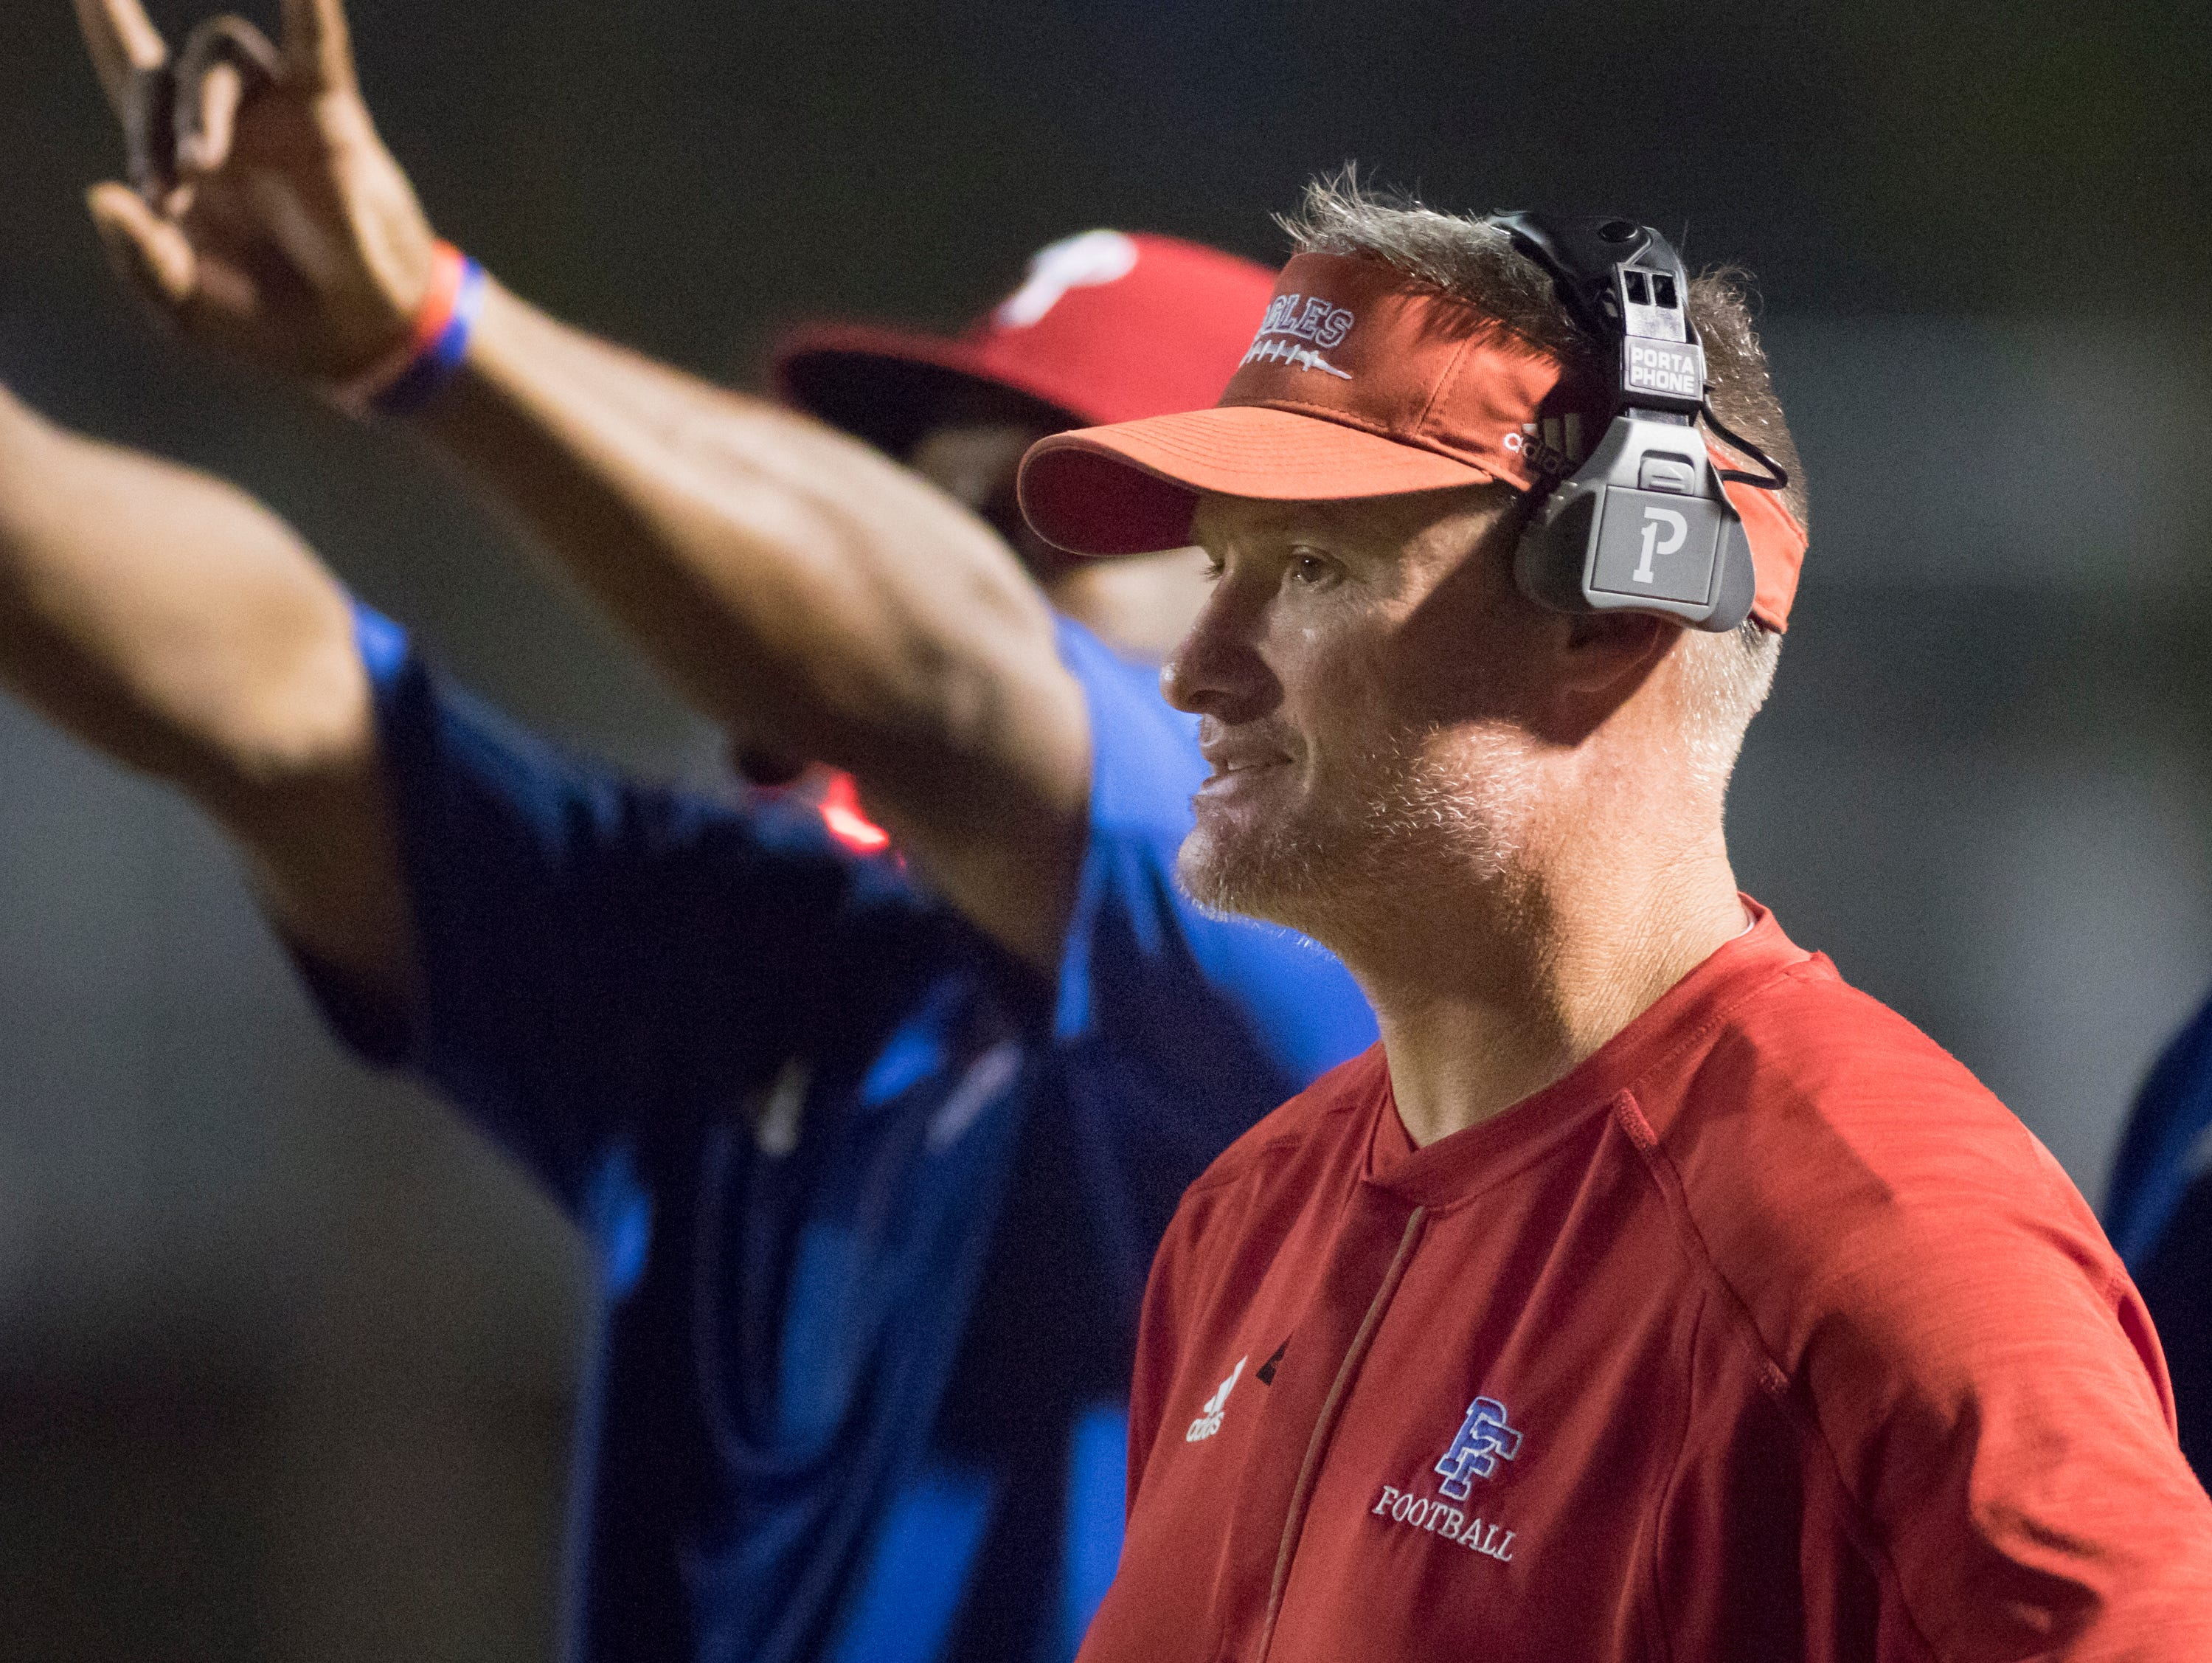 Eagles head coach Jason McDonald keeps an eye on the action during the West Florida vs Pine Forest football game at Pine Forest High School in Pensacola on Friday, October 5, 2018.